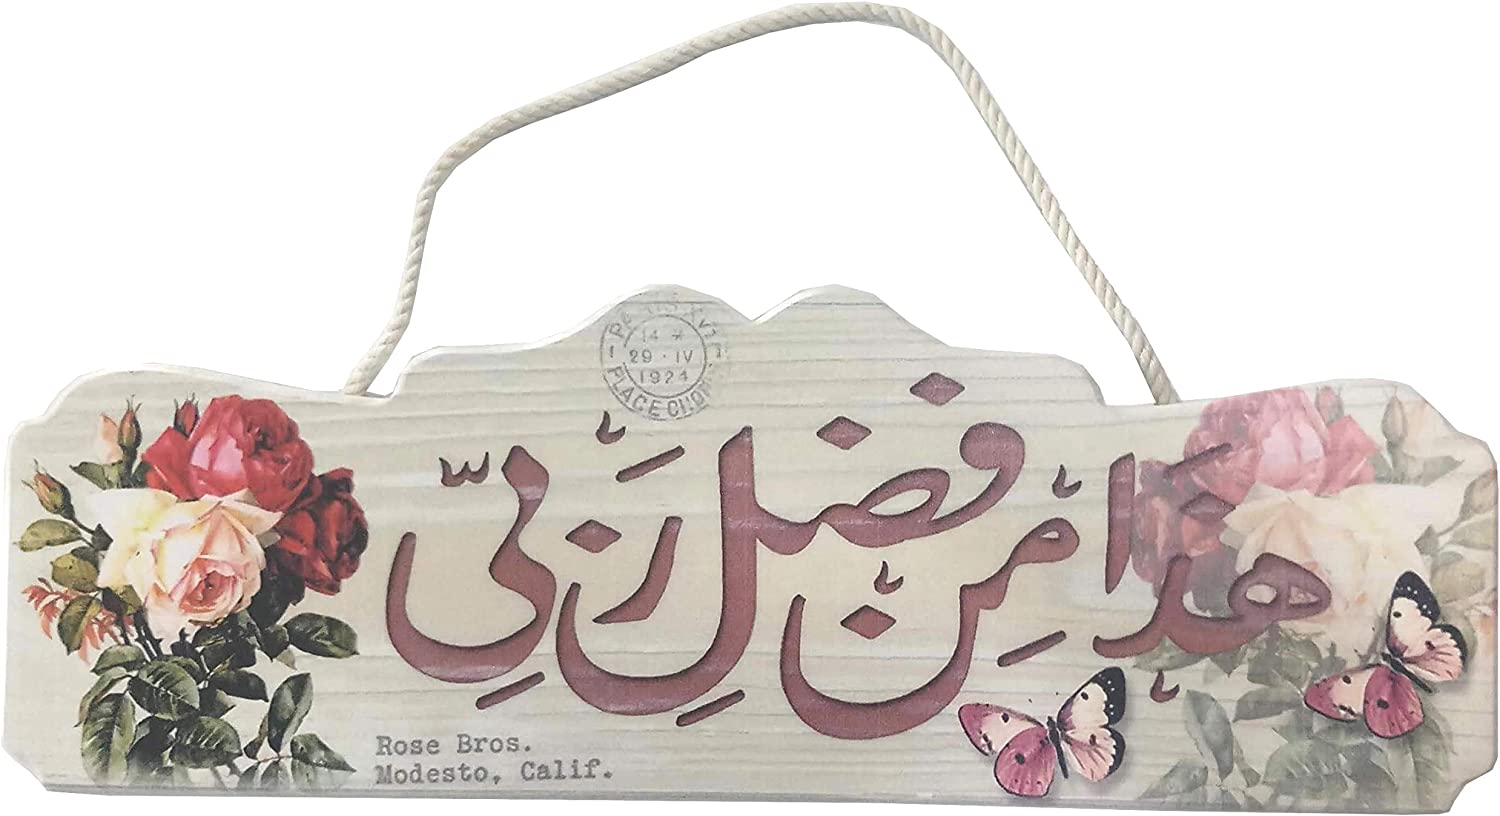 Wall Hanging Islamic Printed Wood Plaque Sign Dua for Home Decor AMN-154 Arabic Calligraphy Room Decorative Display Ornament with Hanging Rope (Dua for House_05)